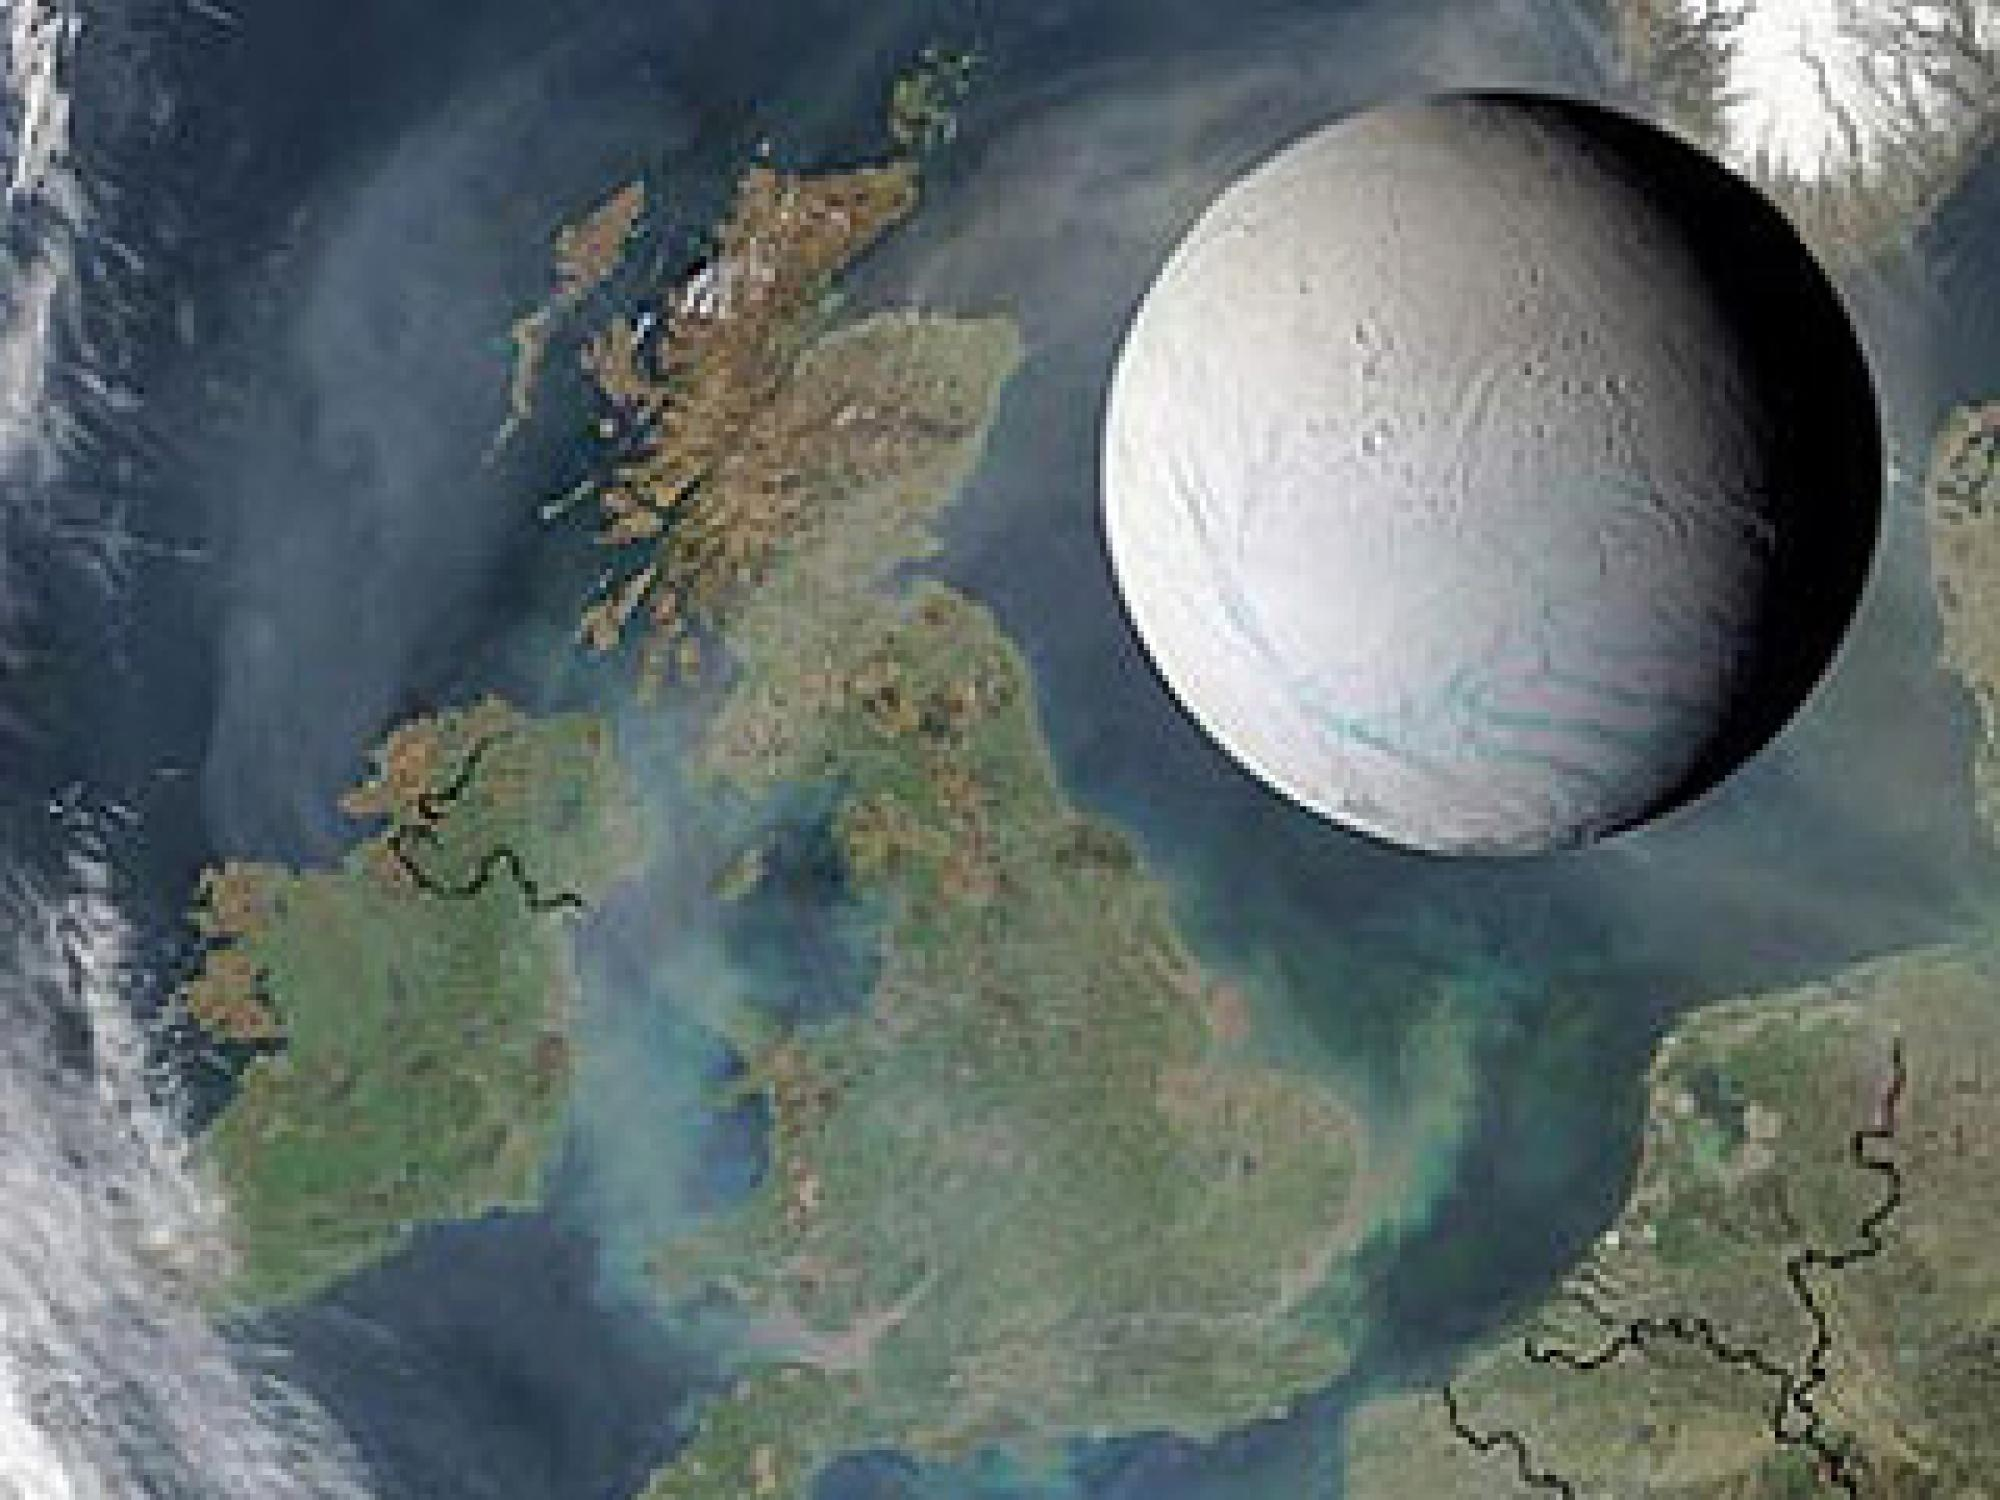 UA's Bob Brown and other Cassini scientists presented new findings about the age of surface features on Saturn's moon Enceladus in a news briefing in London today. The image above shows the moon is small enough to fit within the length of the U